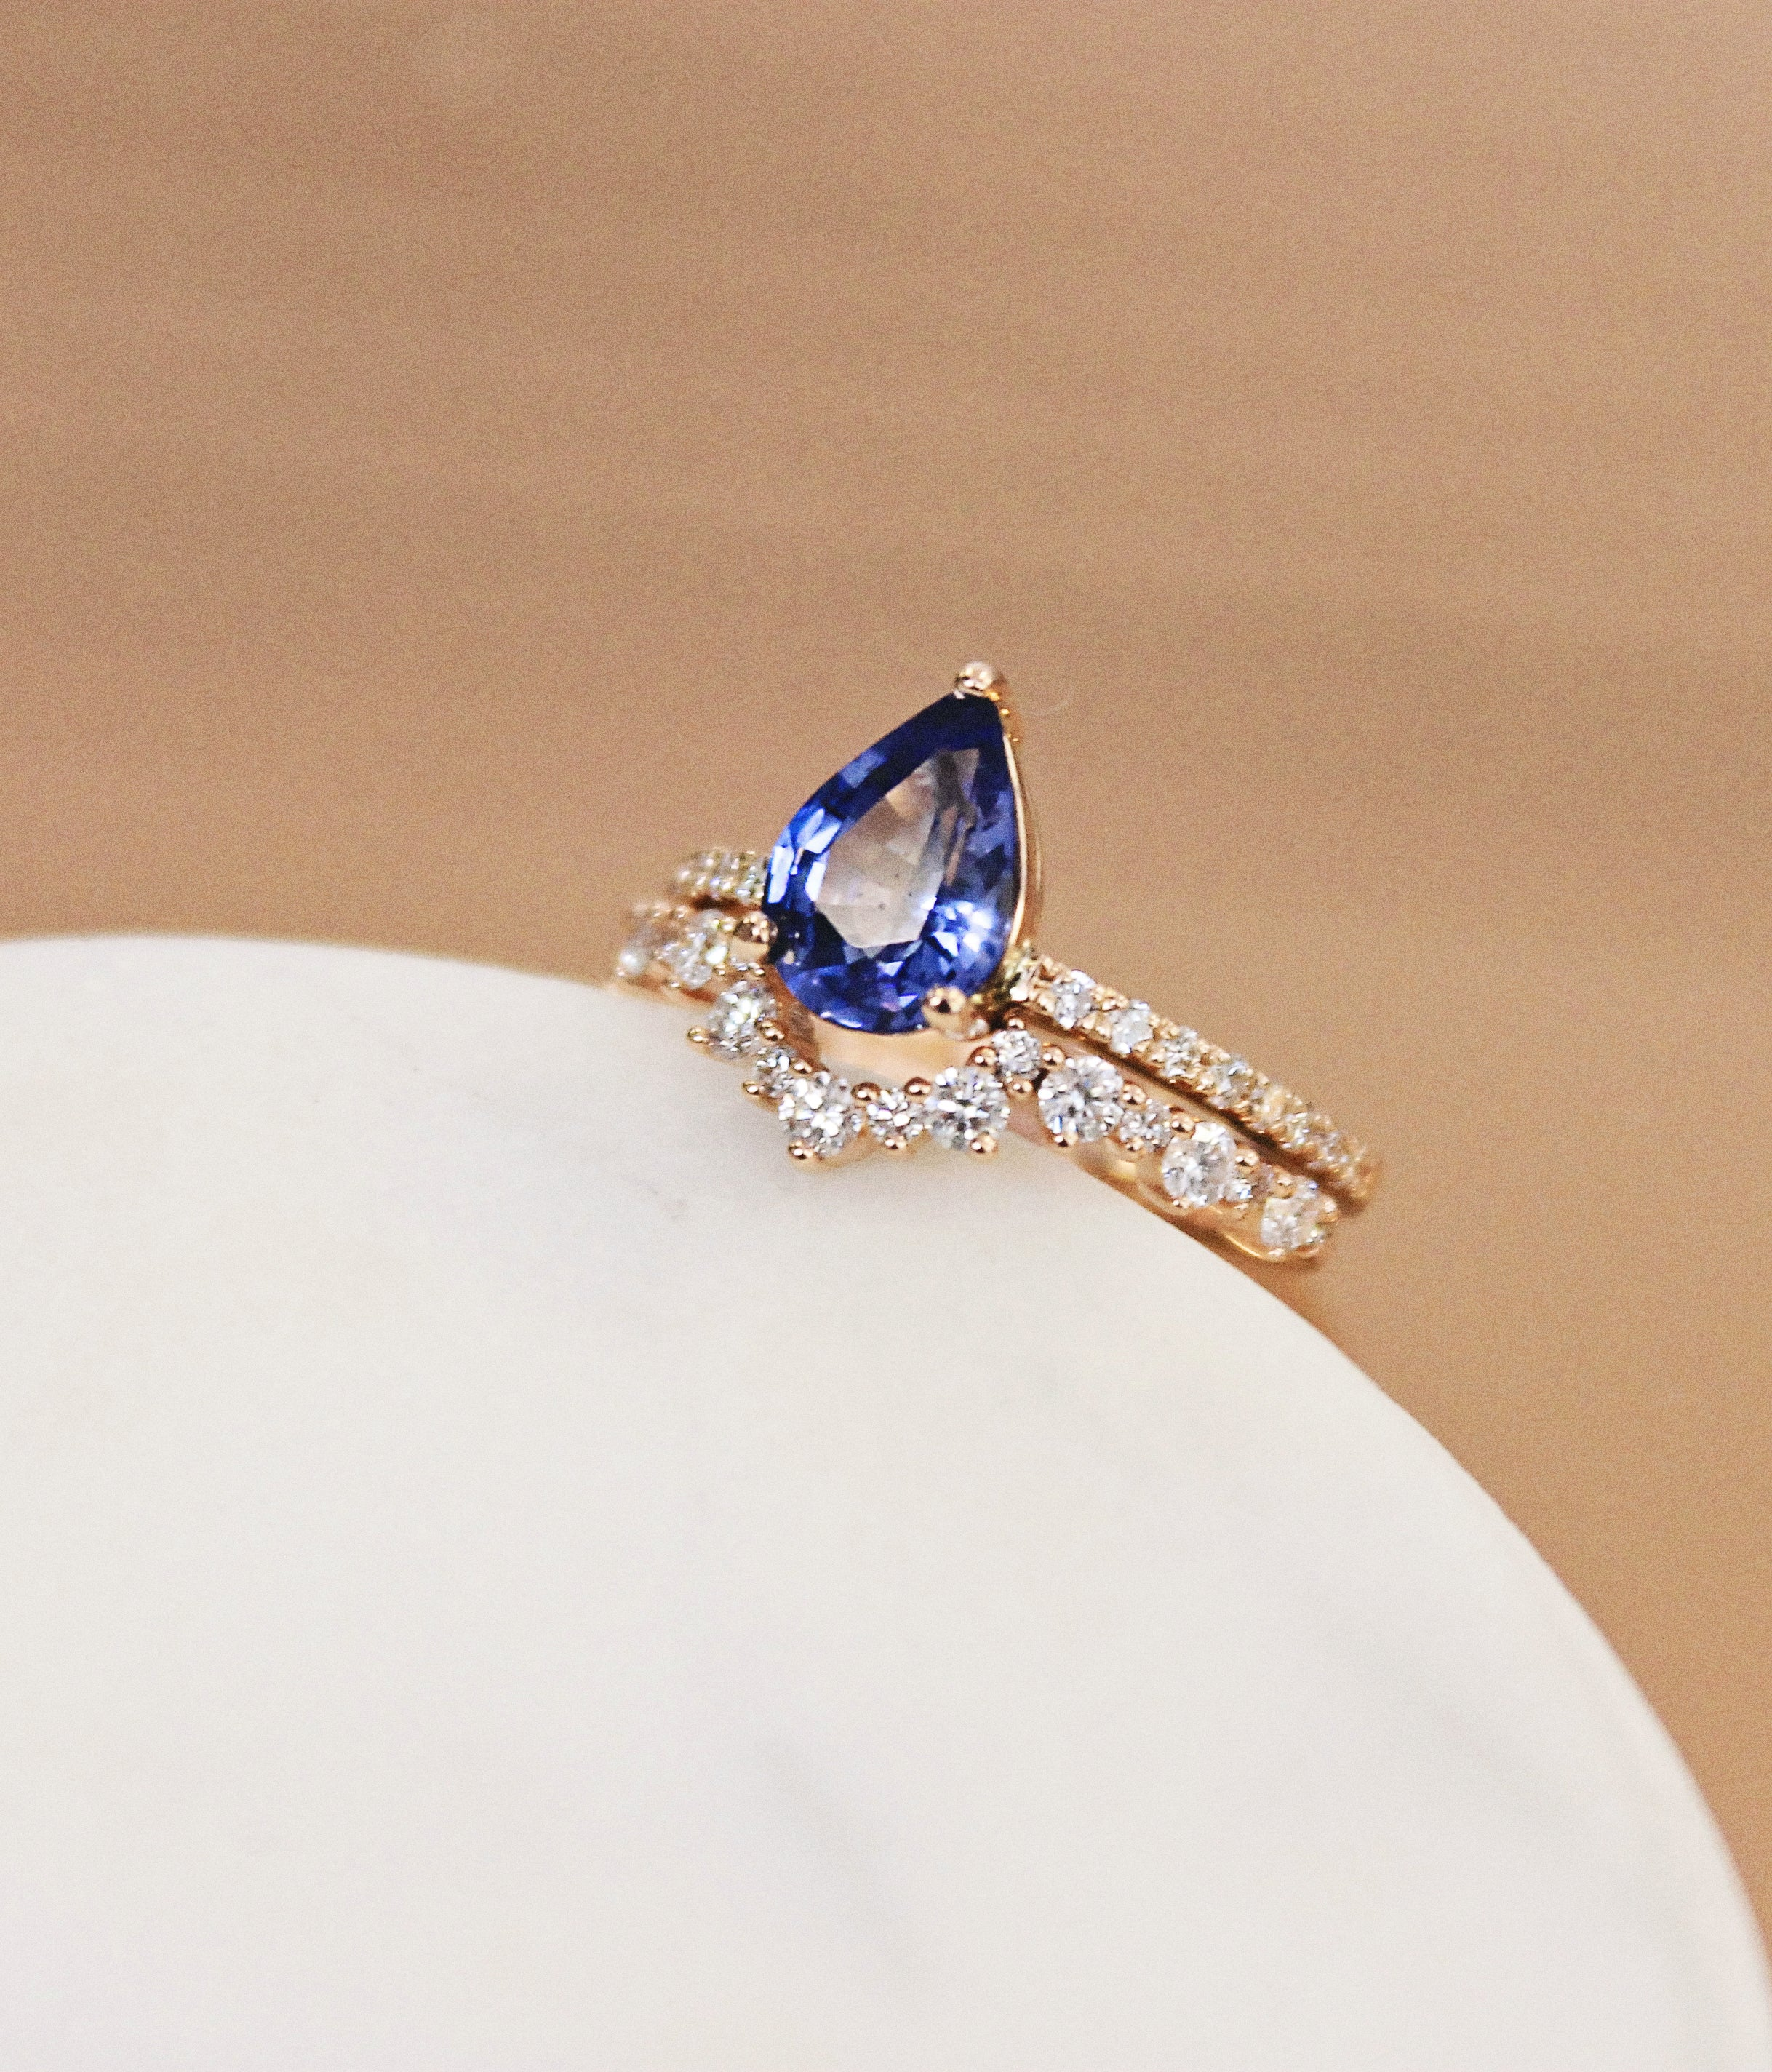 Sapphire pear shape rose gold cluster diamond halo eternity ring engagement wedding band fitted  claw setting